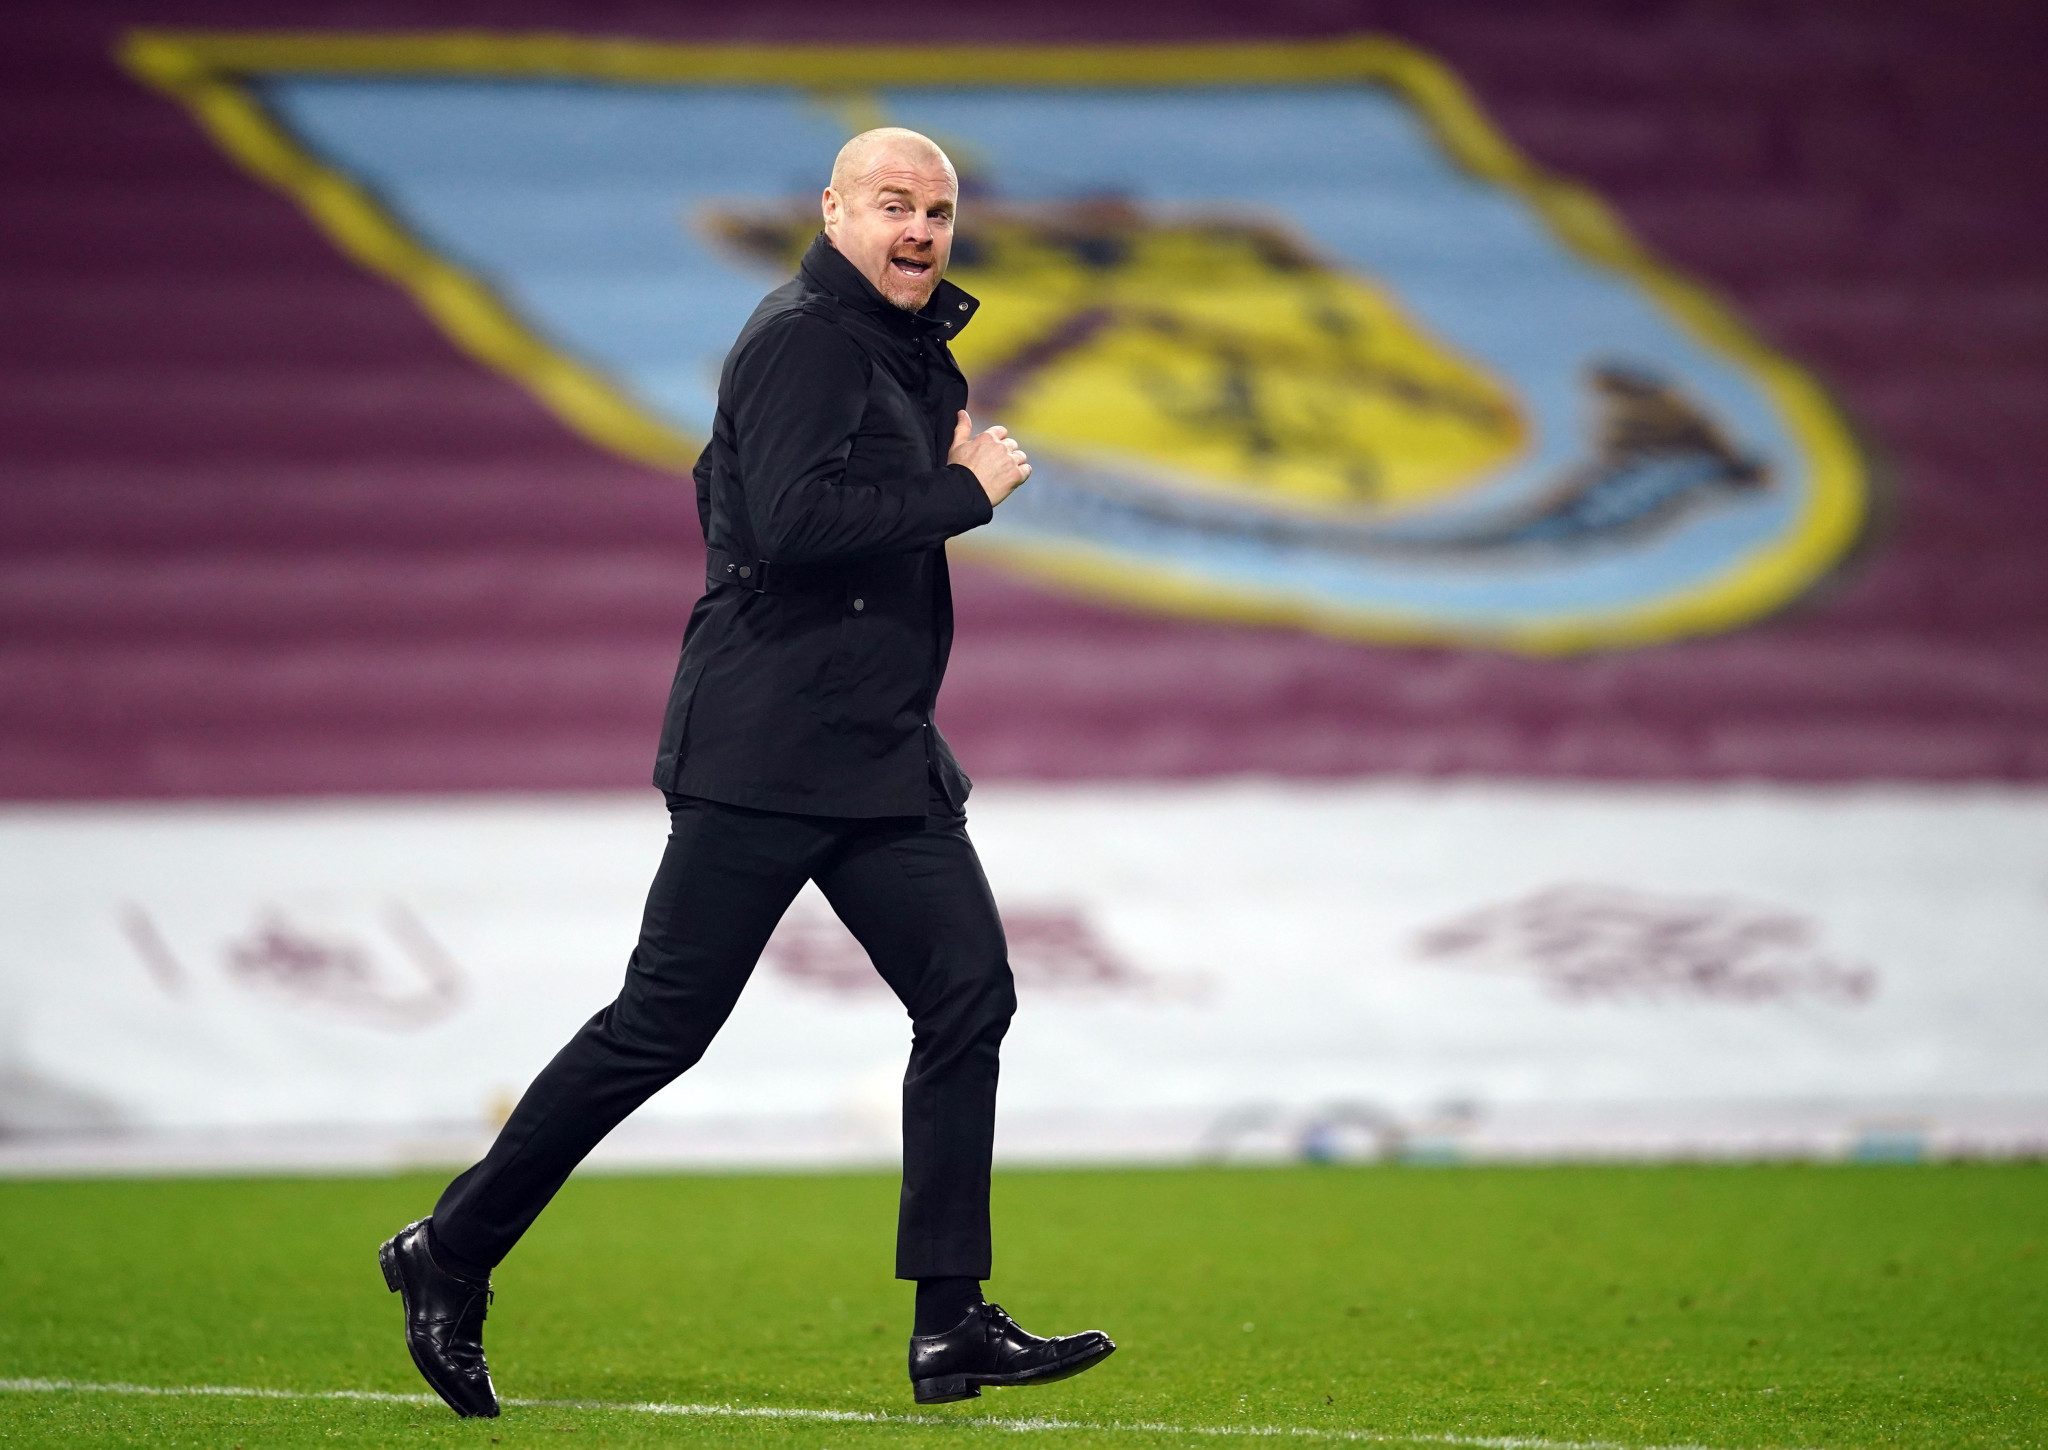 Burnley manager Sean Dyche has suggested vaccinations of Premier League players was the way forward for football ©Getty Images